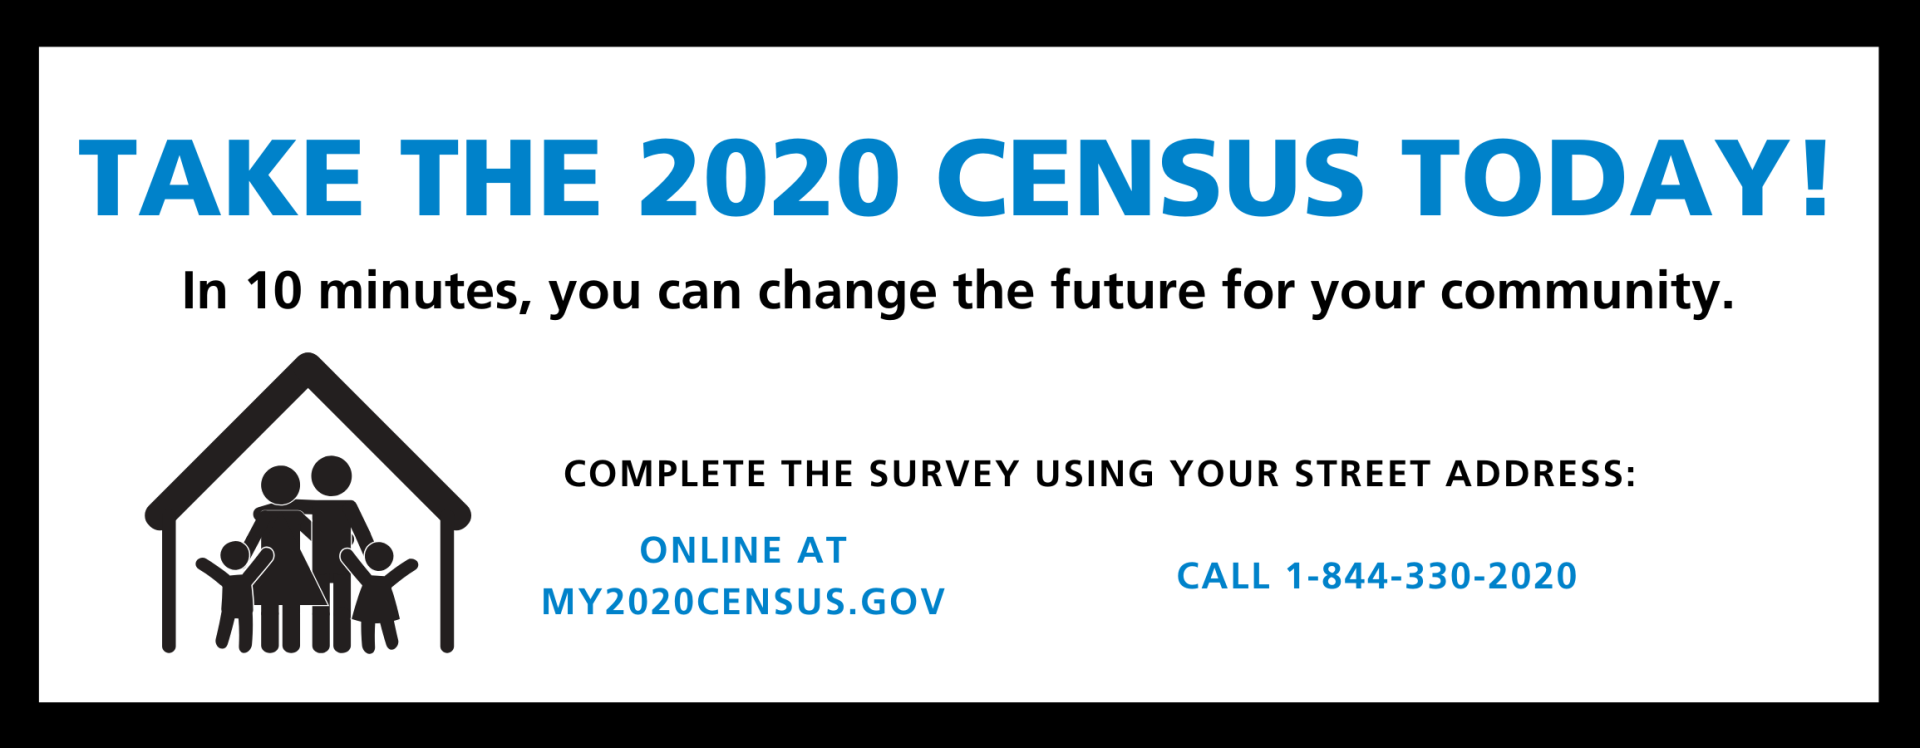 COMPLETE THE 2020 CENSUS. In 10 minutes, you can change the future for your community. Complete the survey online at my2020census.gov or by calling 1-844-330-2020.